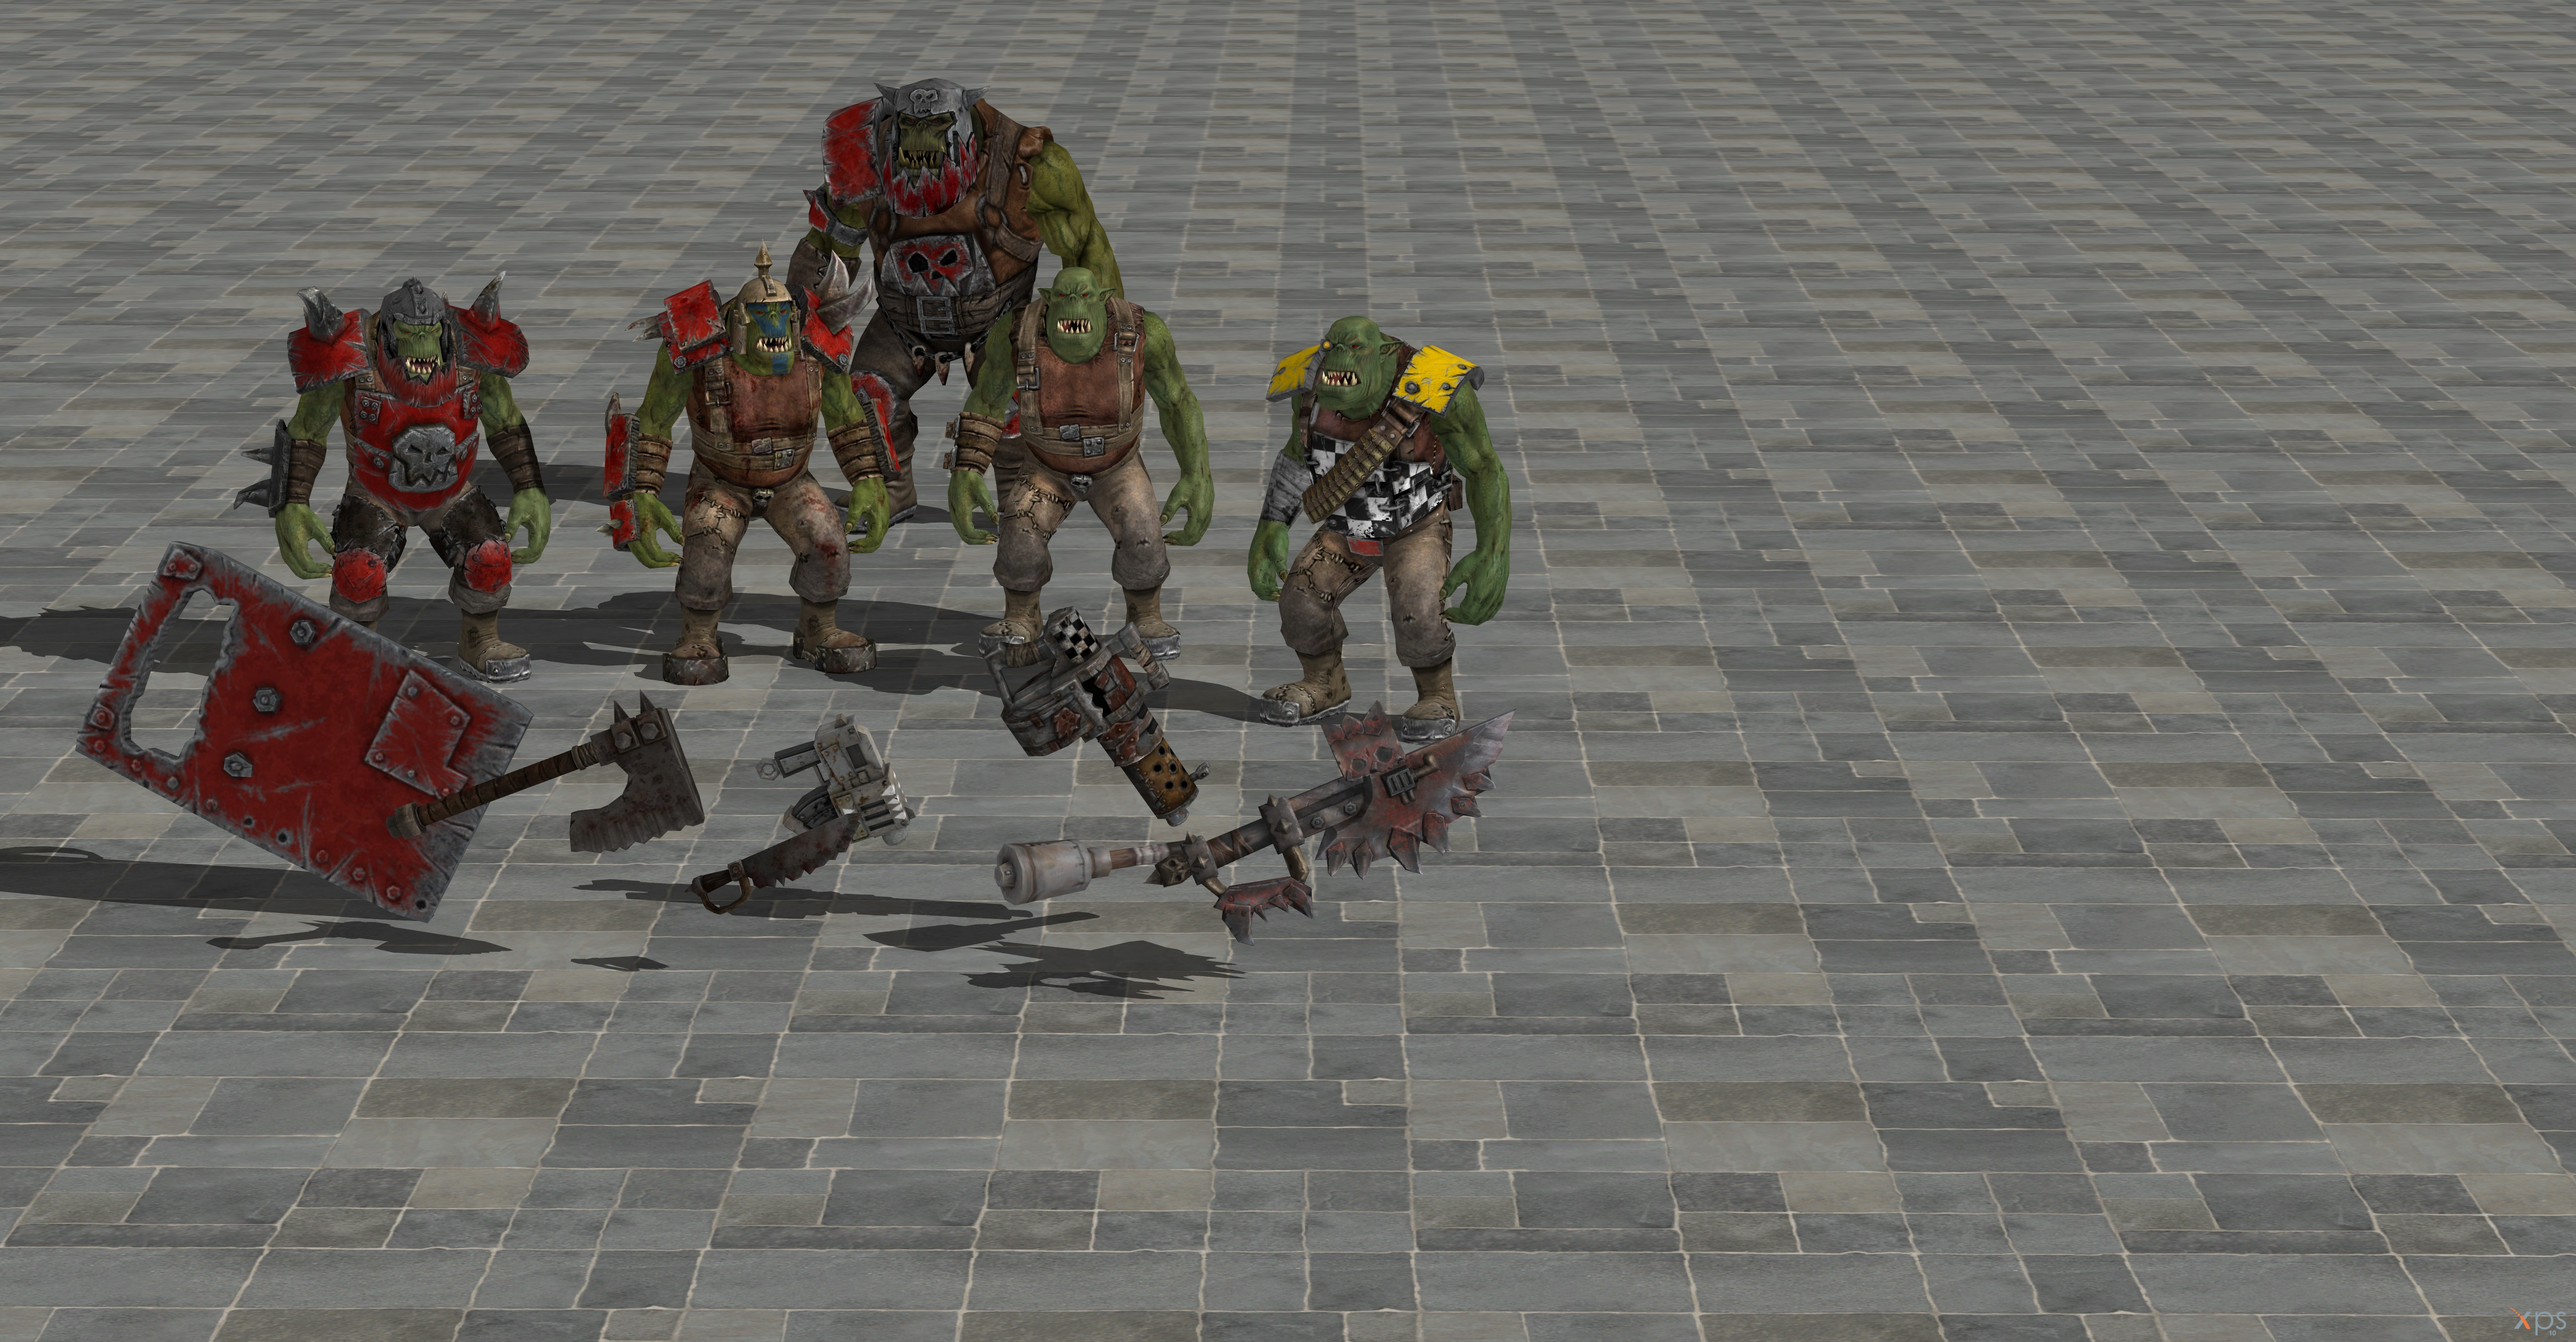 Warhammer 40k Space Marine Ork pack Xnalara  Xps by soulbrother73